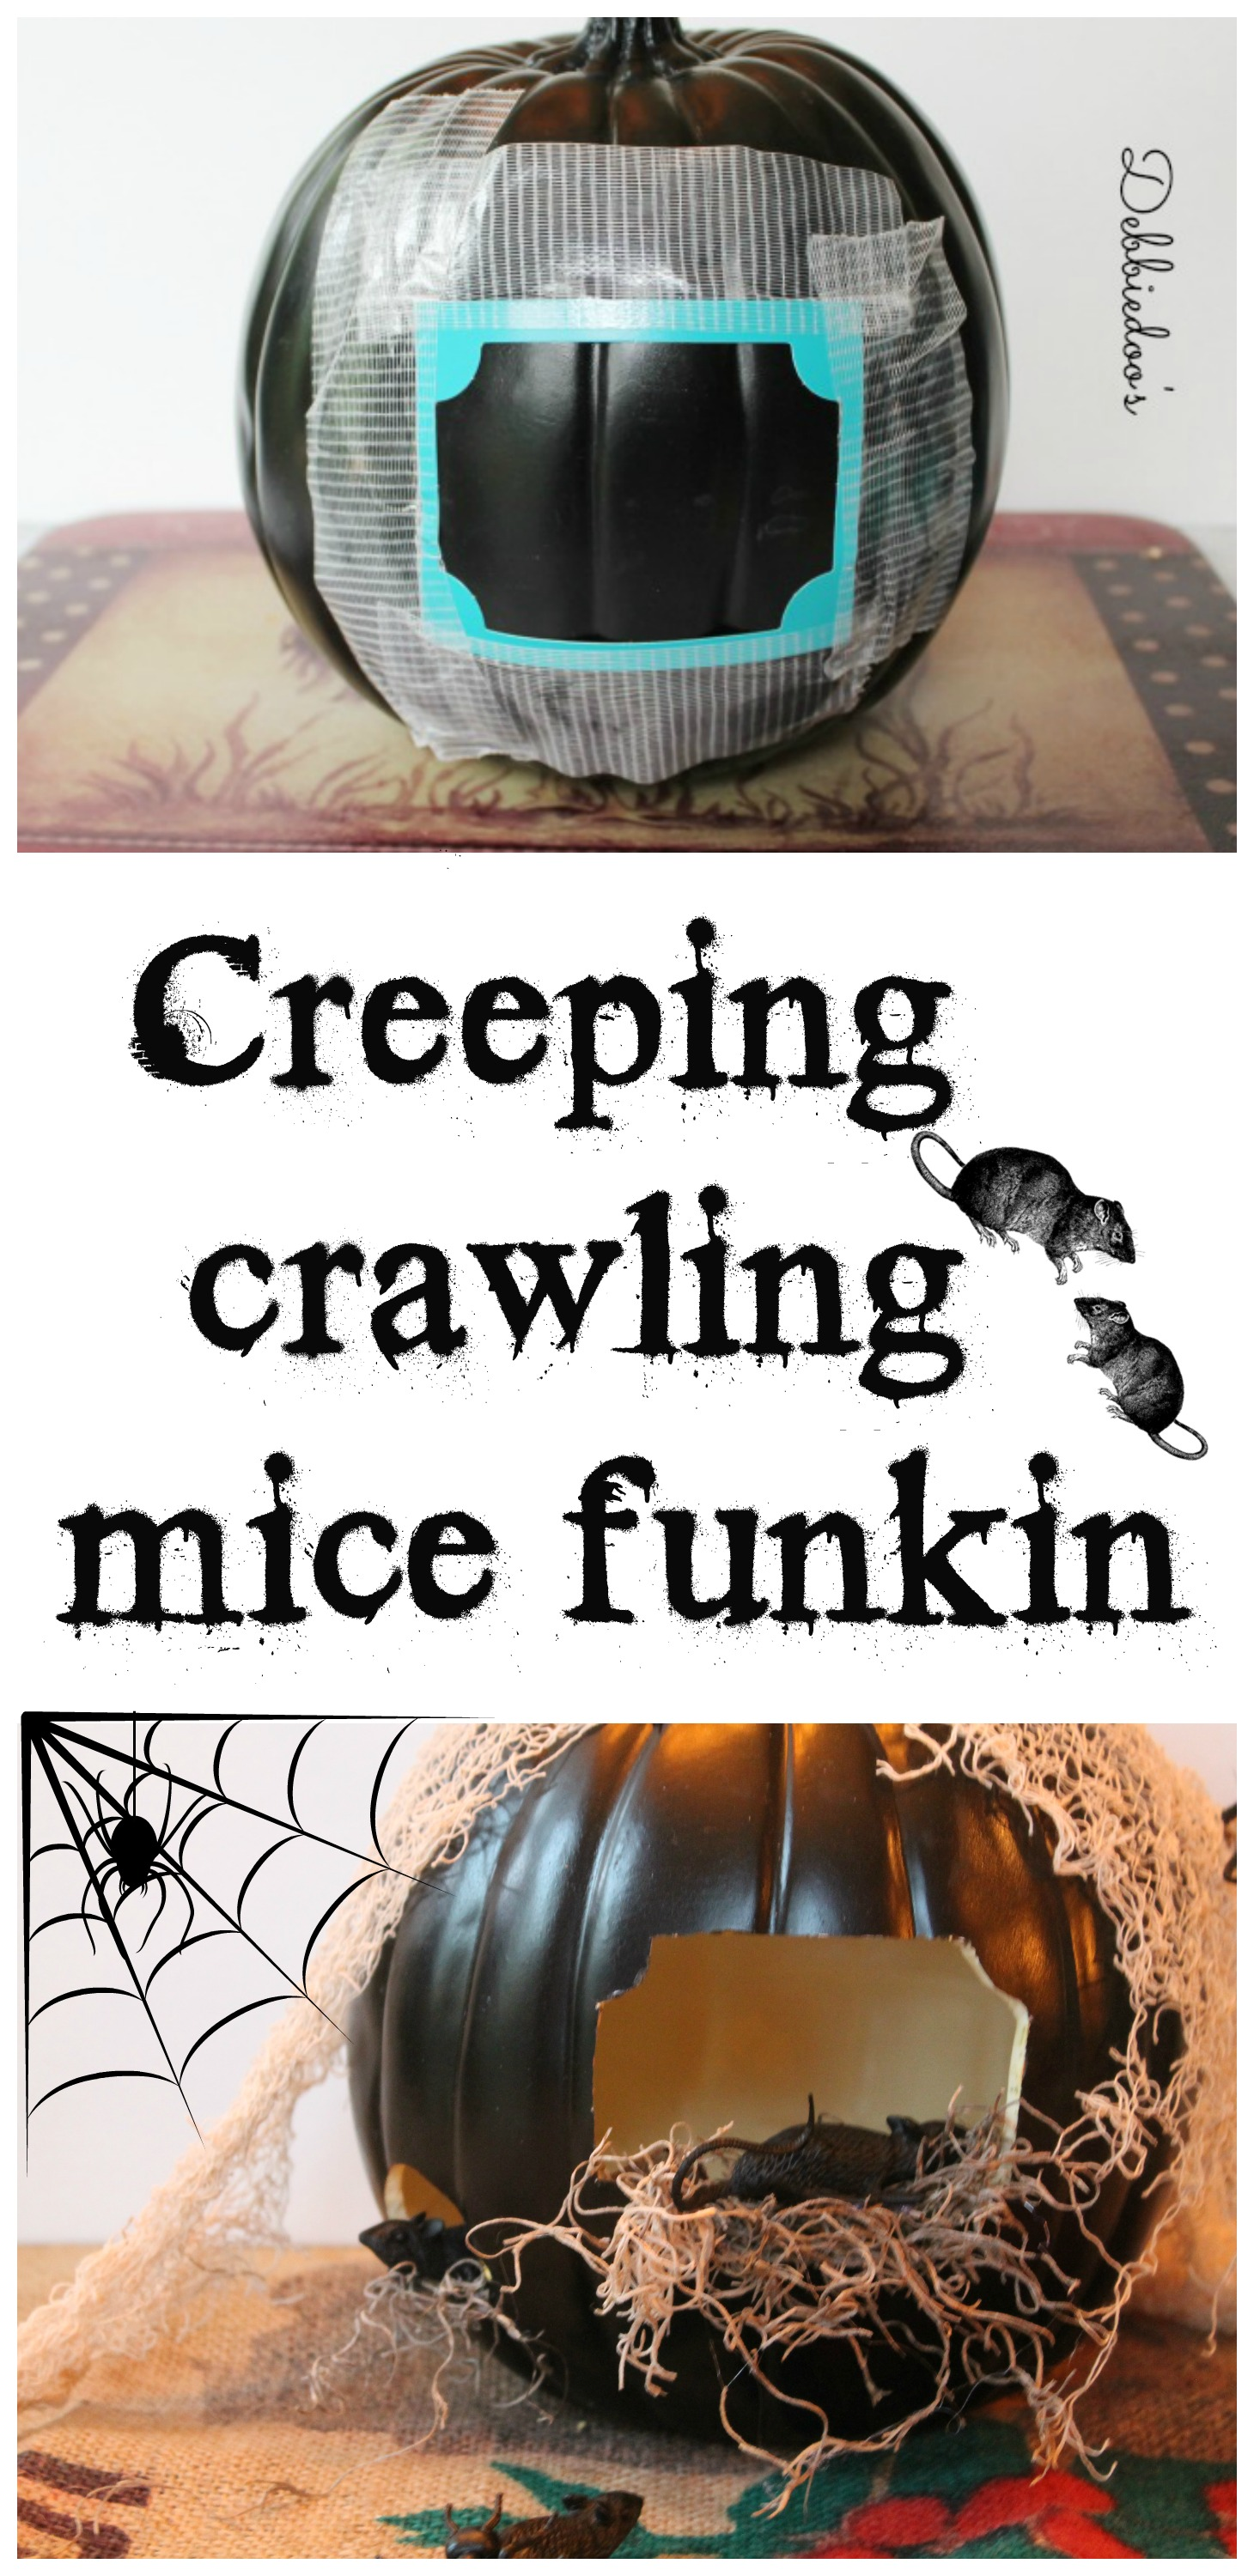 How to make a creeper funkin with mice